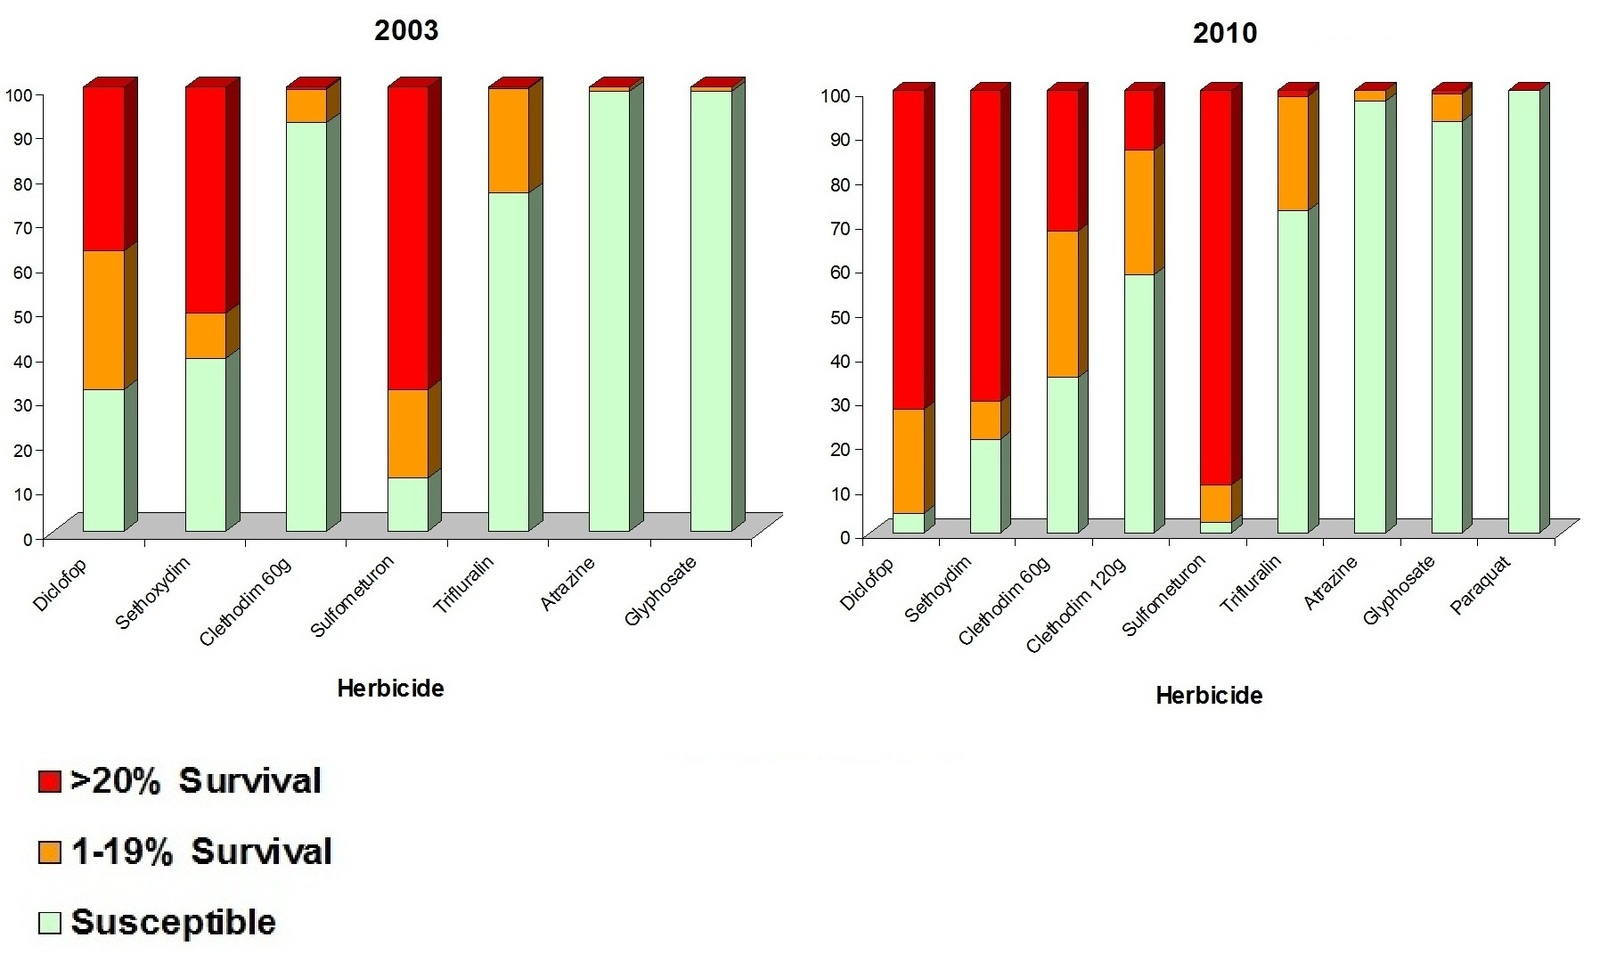 Herbicide resistance survey graphs